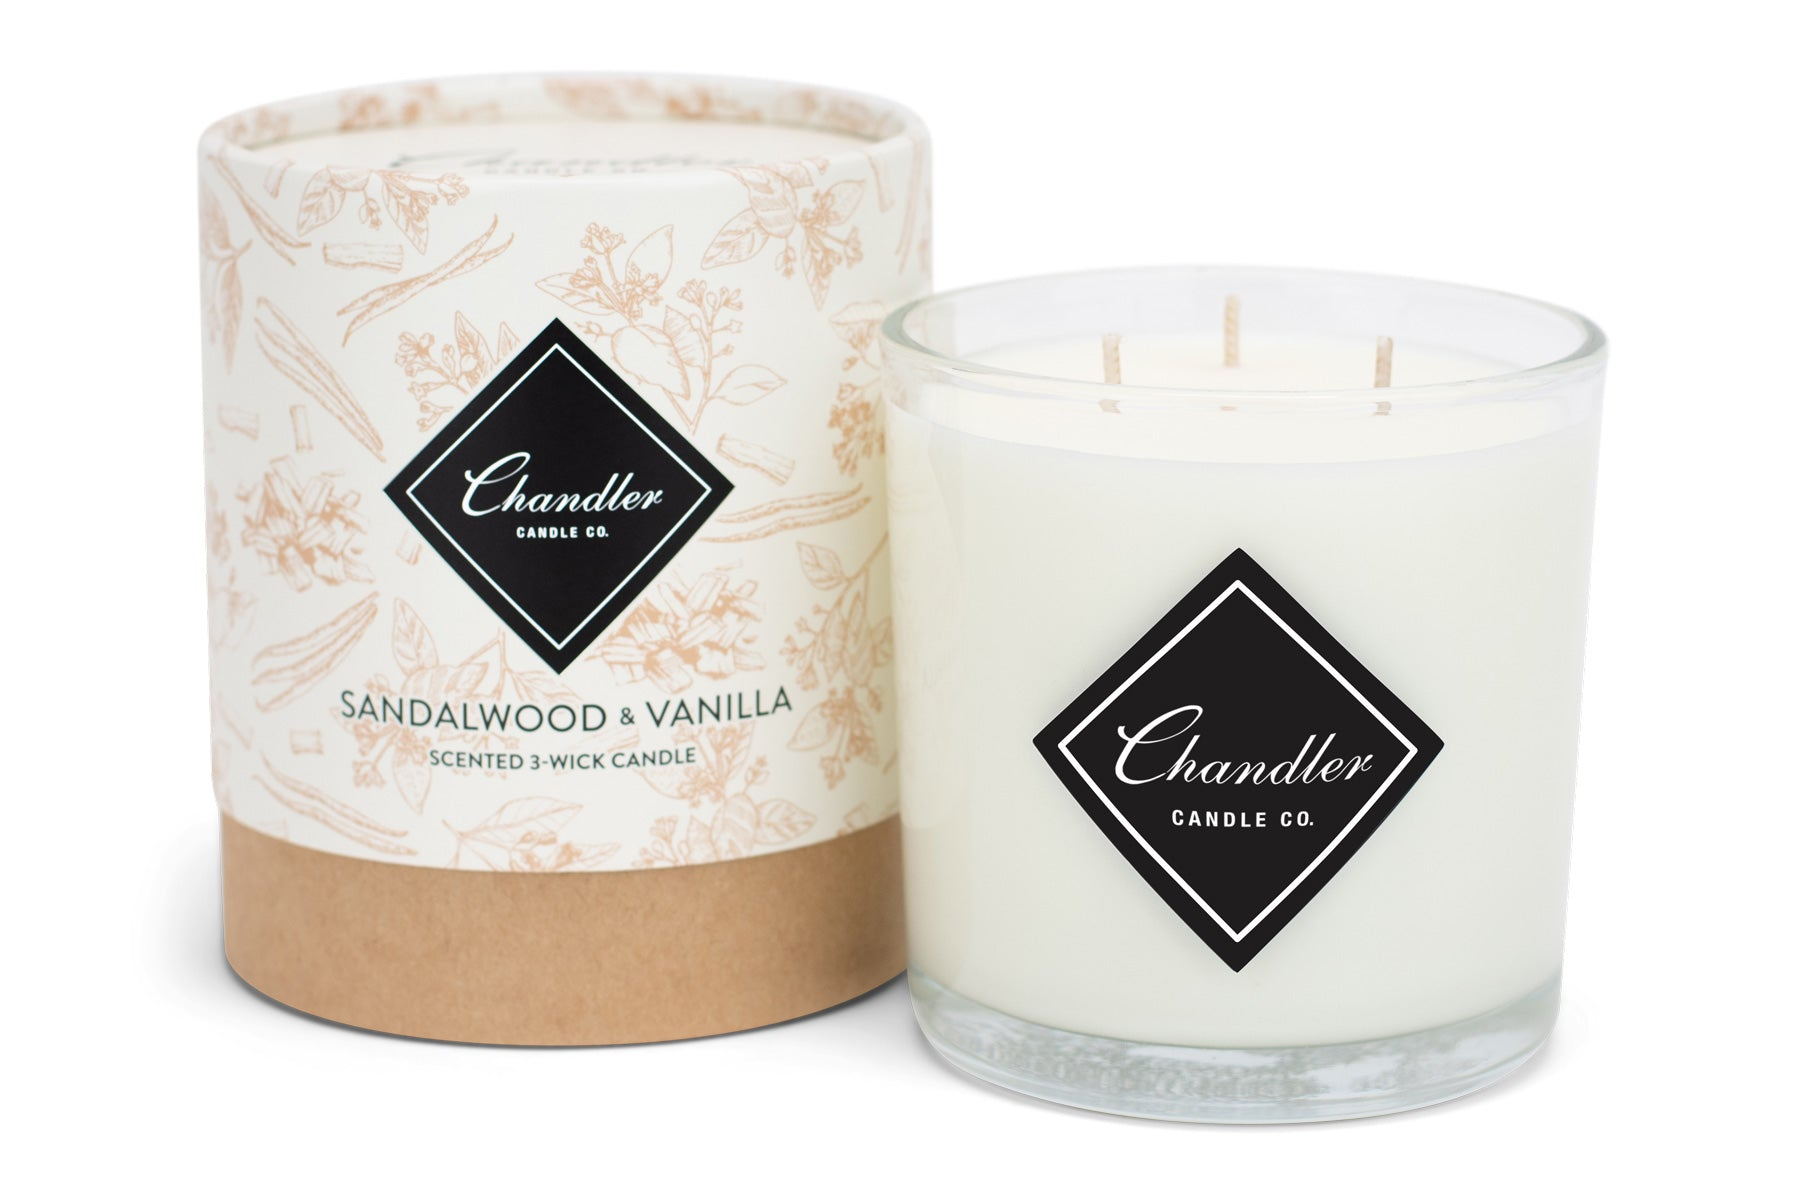 Large 3-Wick Sandalwood & Vanilla Scented Candle